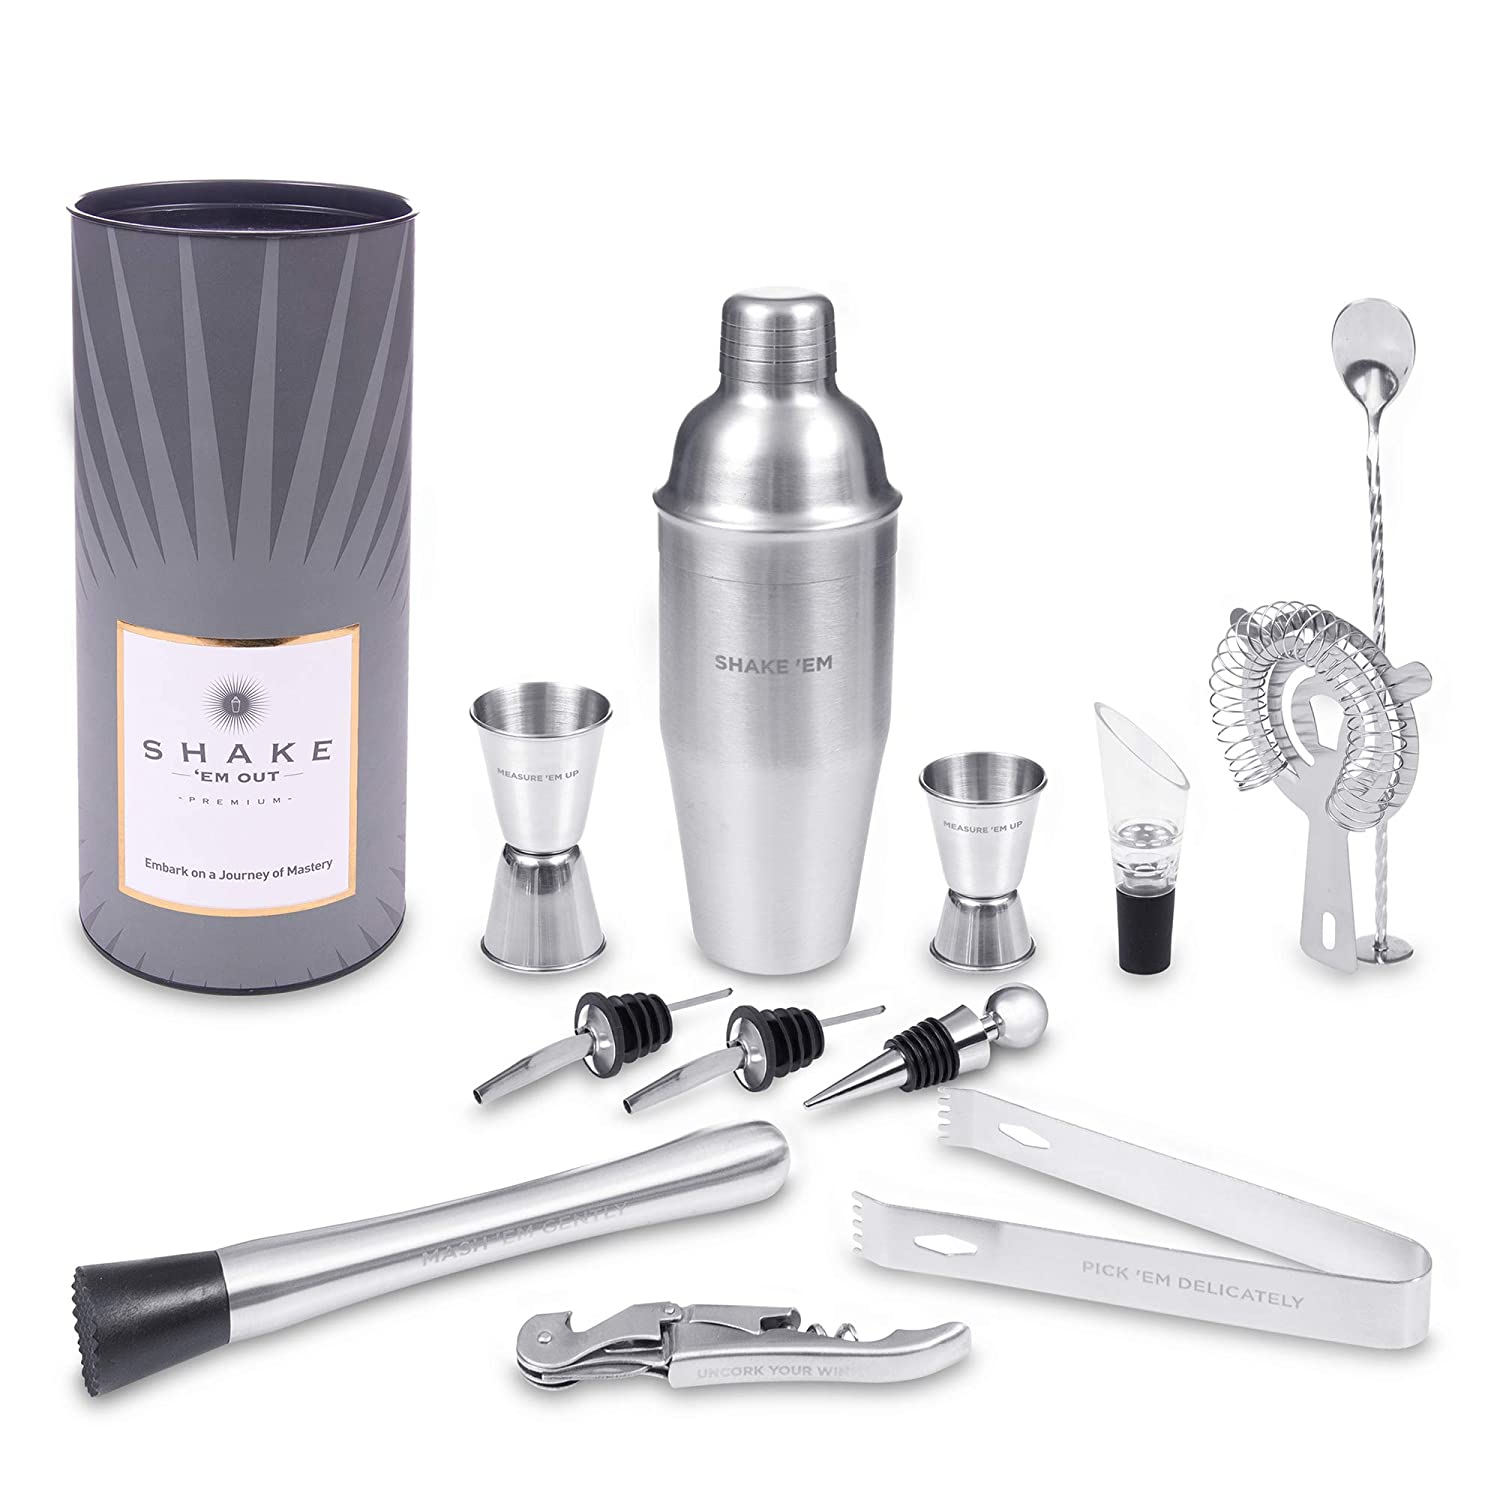 Barware Stainless Steel Shaker Cup Cocktail Shake Cup Shaker Fancy The Blender Bar Supplies Tool Bar Accessories Other Bar Accessories Barware